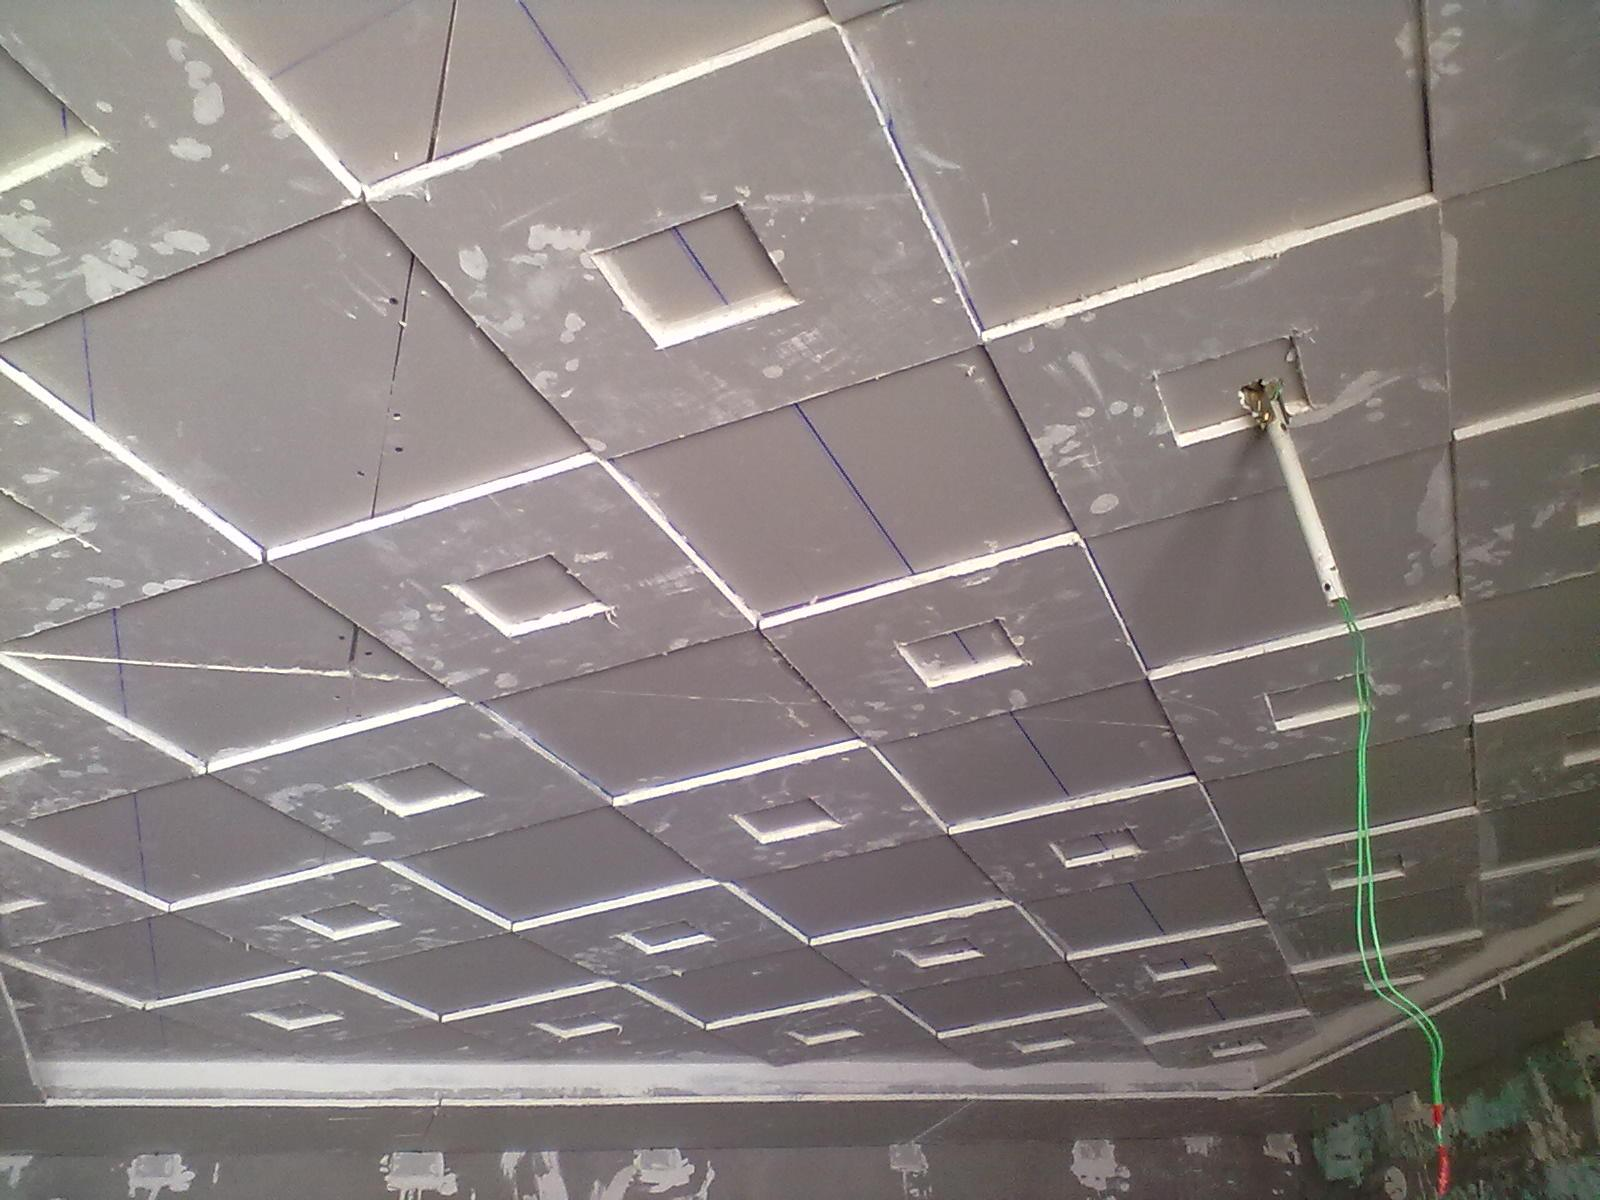 Pop plaster of paris design gharexpert for Wall ceiling pop designs